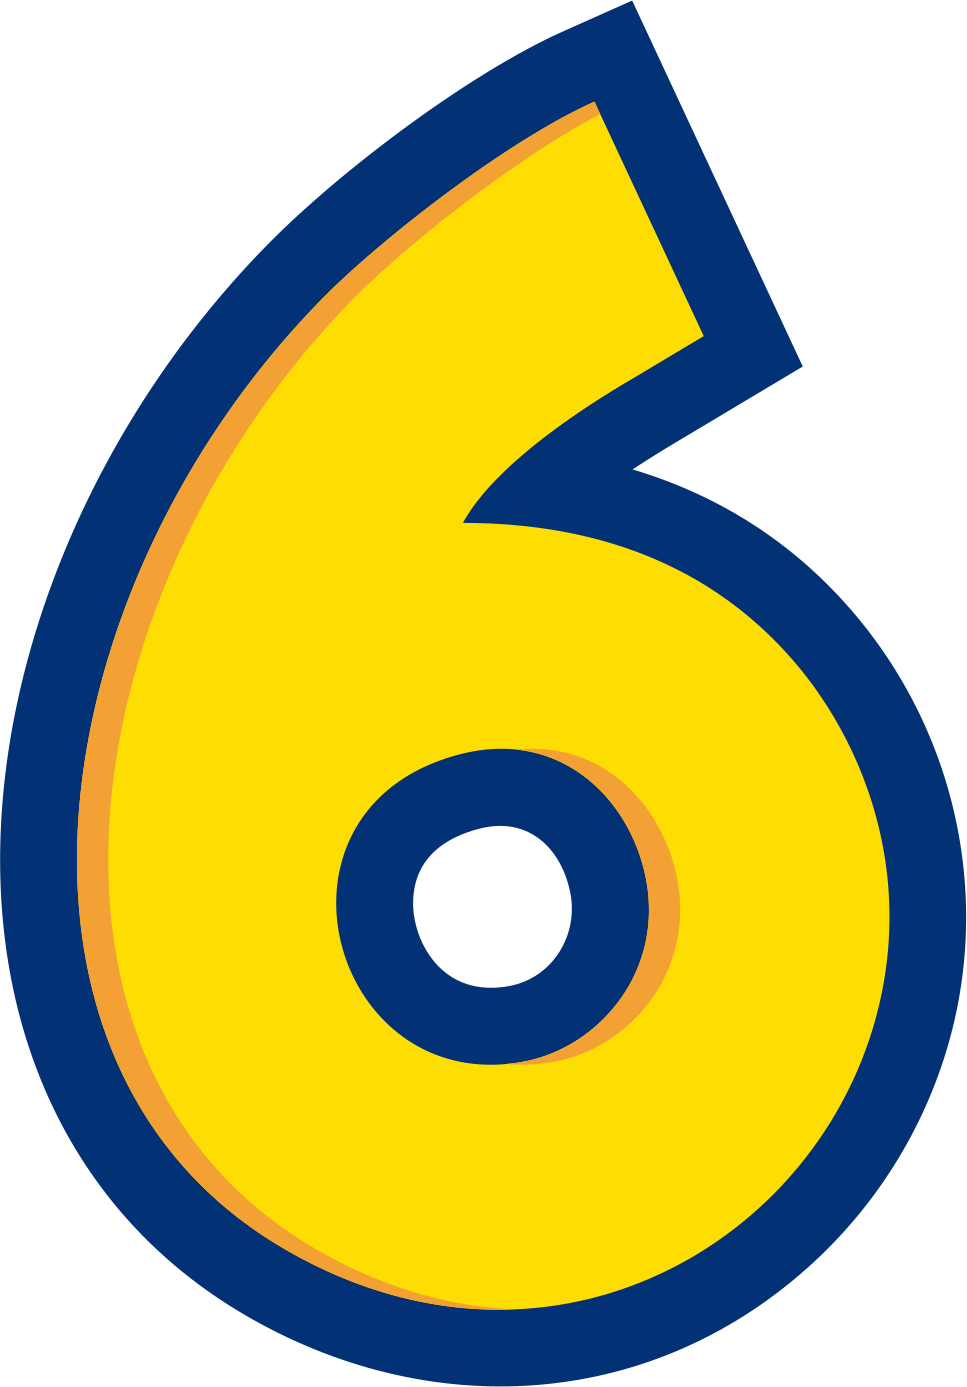 Number 6 PNG images free download, 6 PNG.